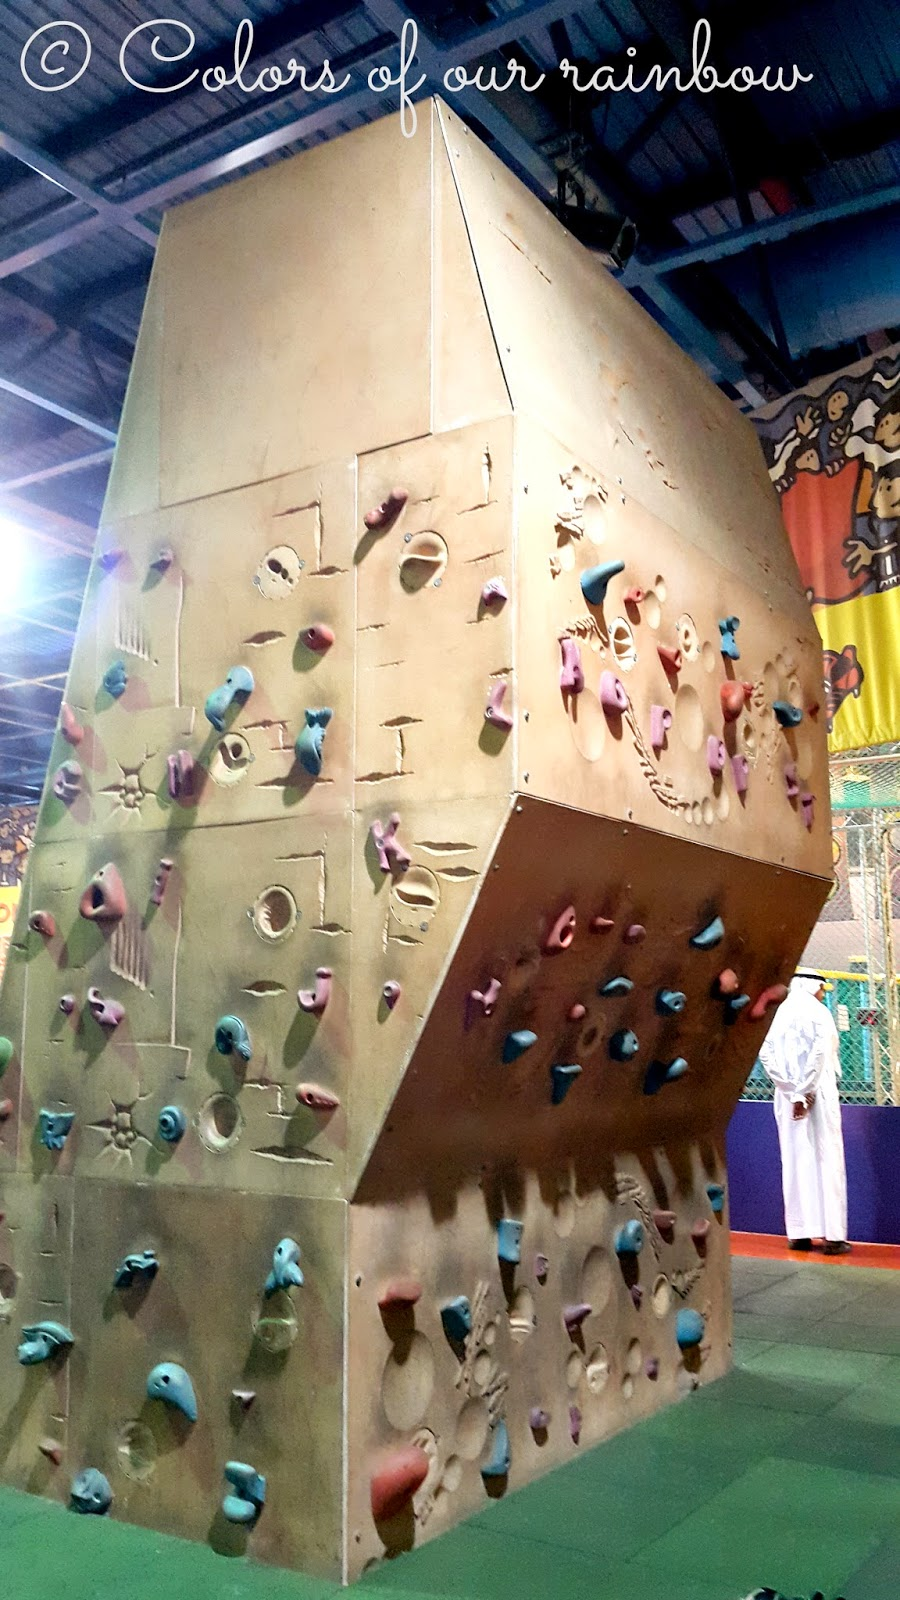 Climbing wall Discovery center sharjah